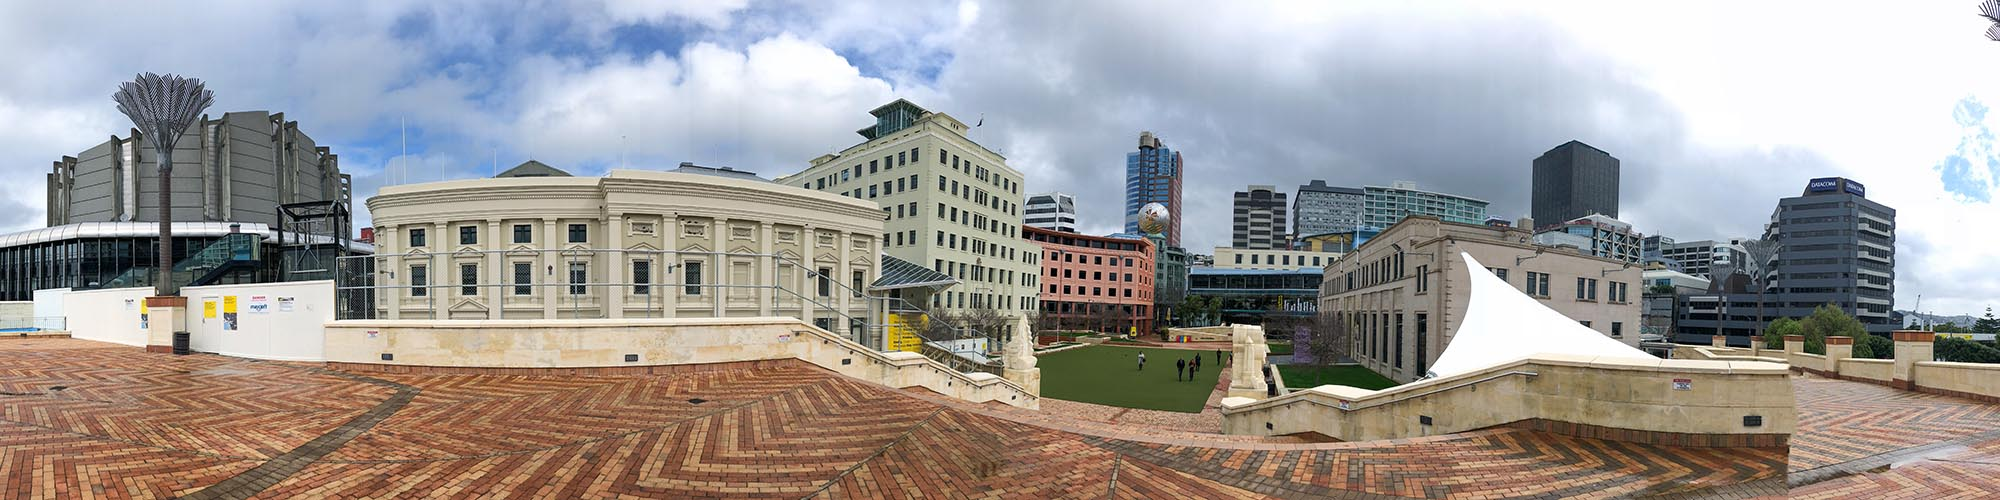 Wellington civic square and CBD.